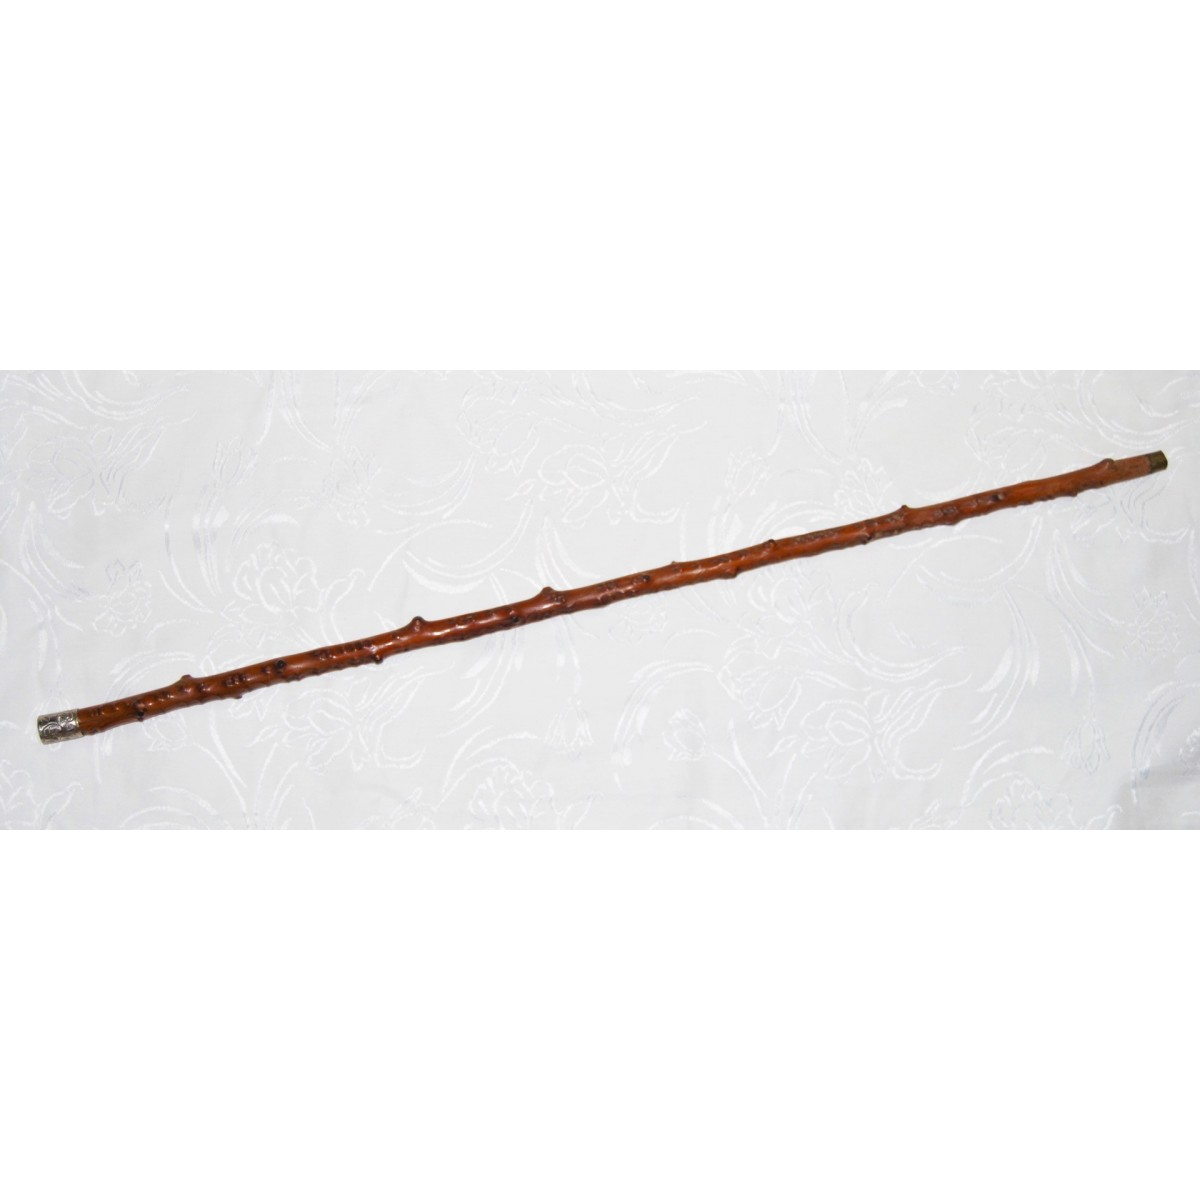 rosewood walking stick, 19th